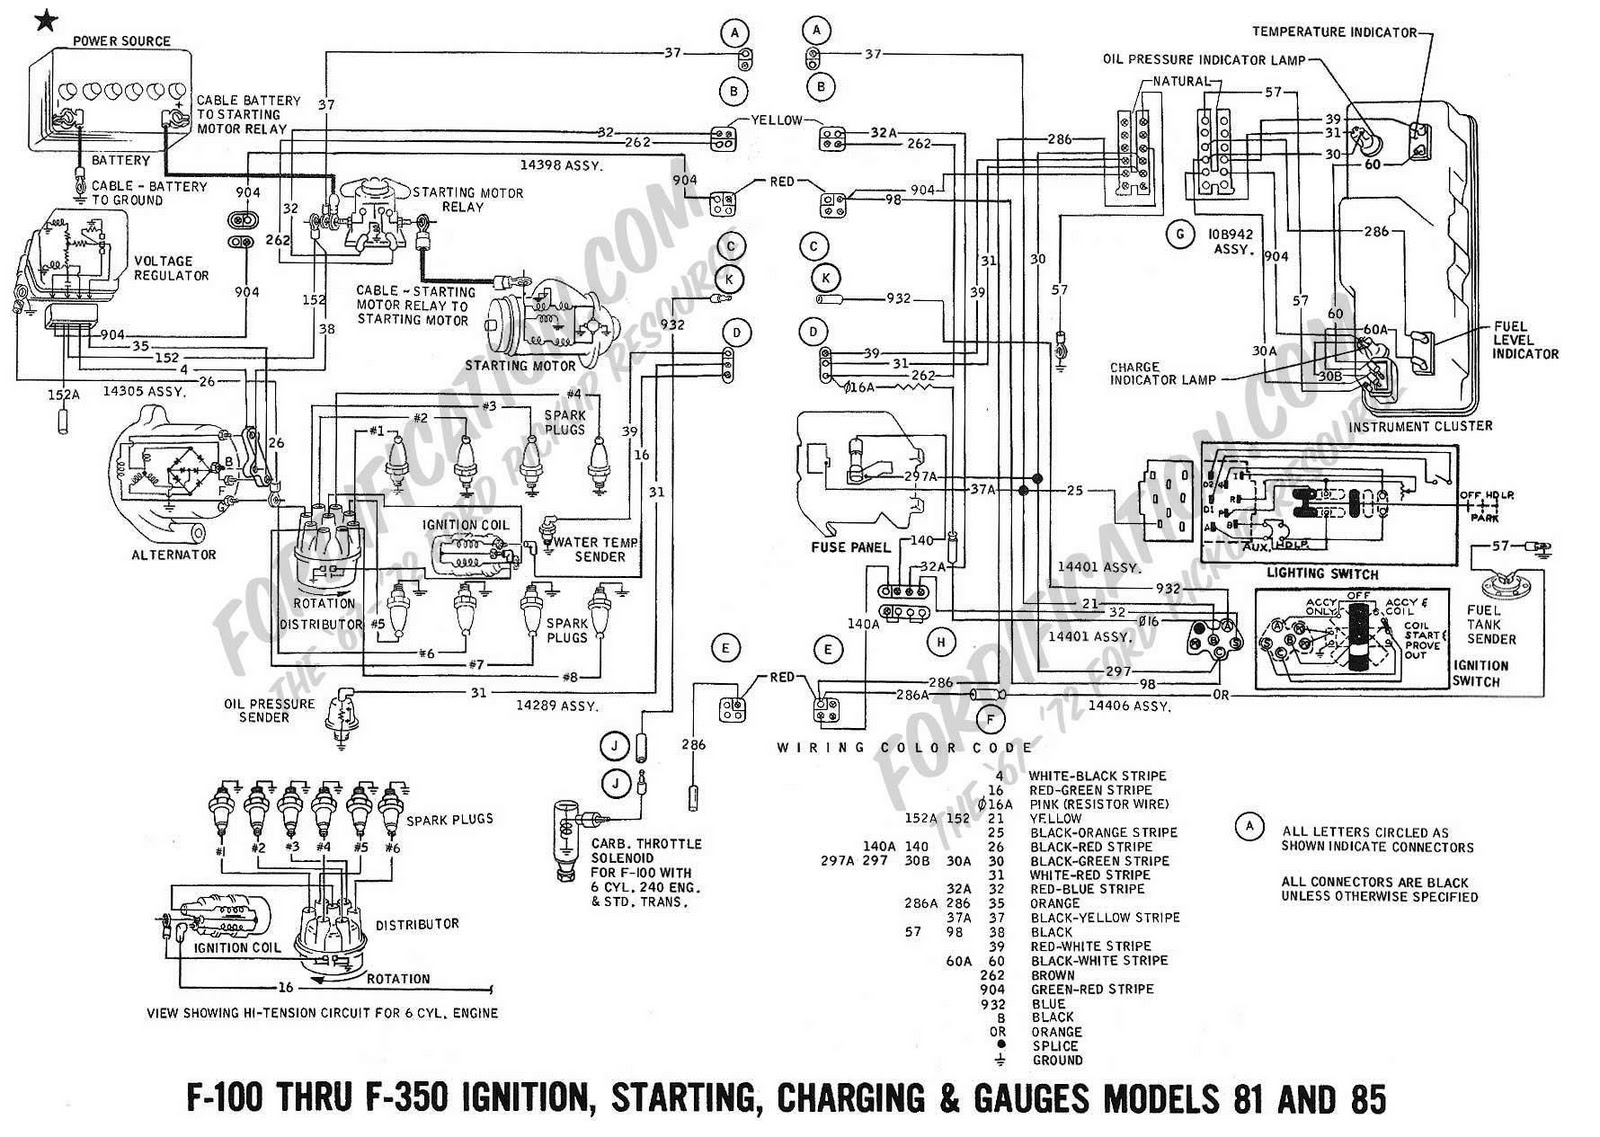 ford f250 neutral safety switch wiring diagram z3 wiring library1966 ford neutral safety switch wiring library [ 1600 x 1137 Pixel ]